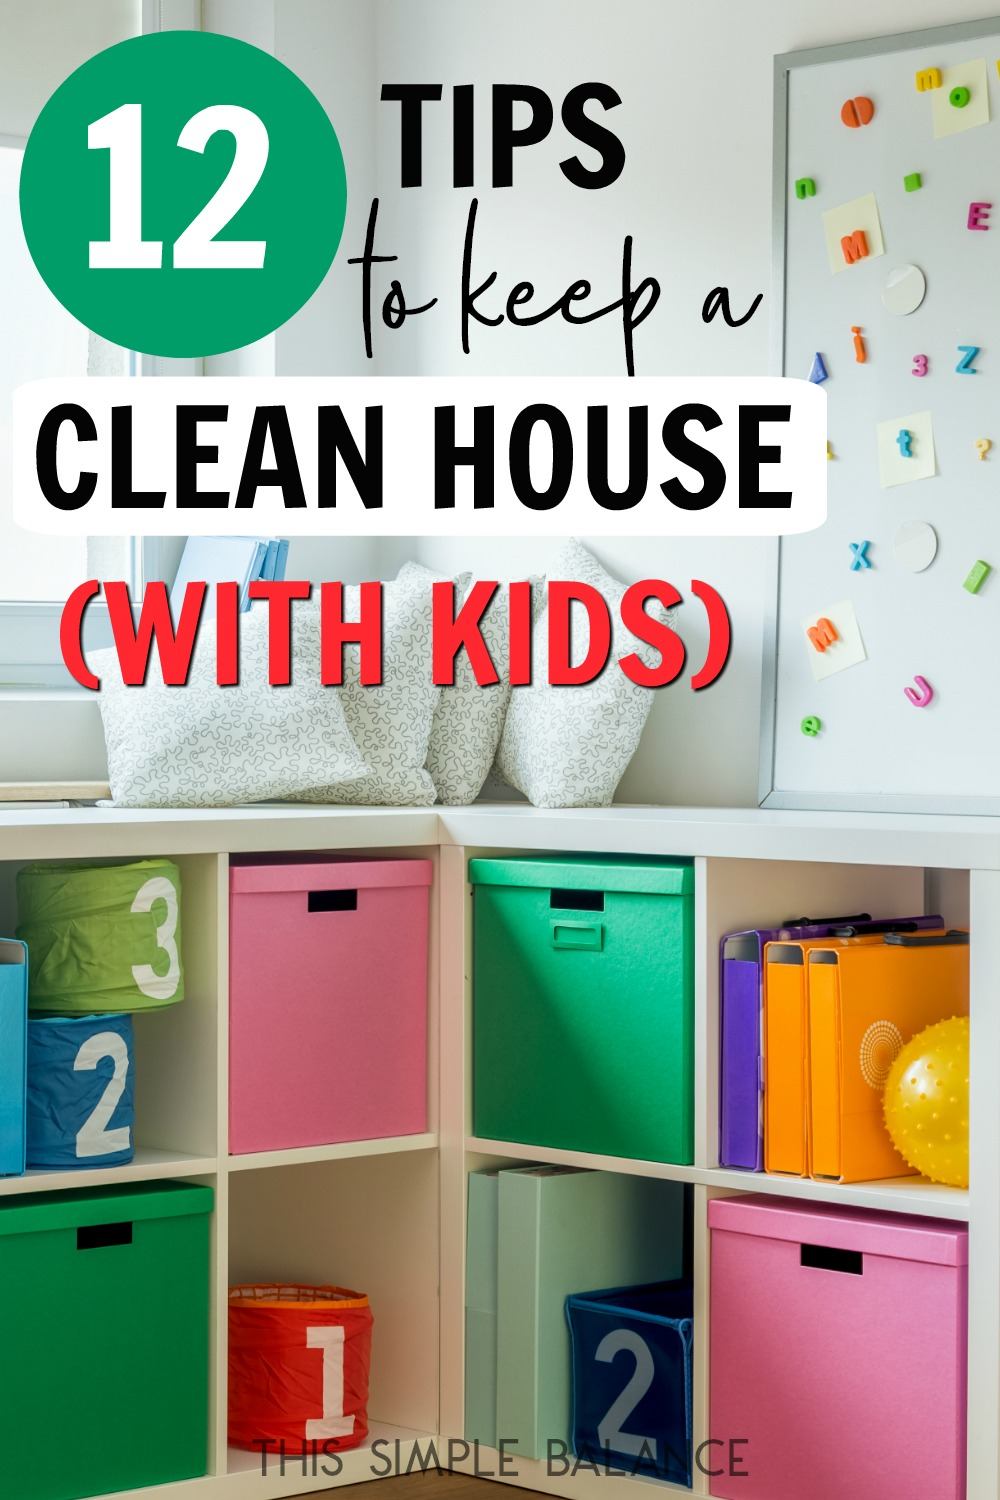 12 Tips To Keep A Clean House With Kids From Mom Of 5